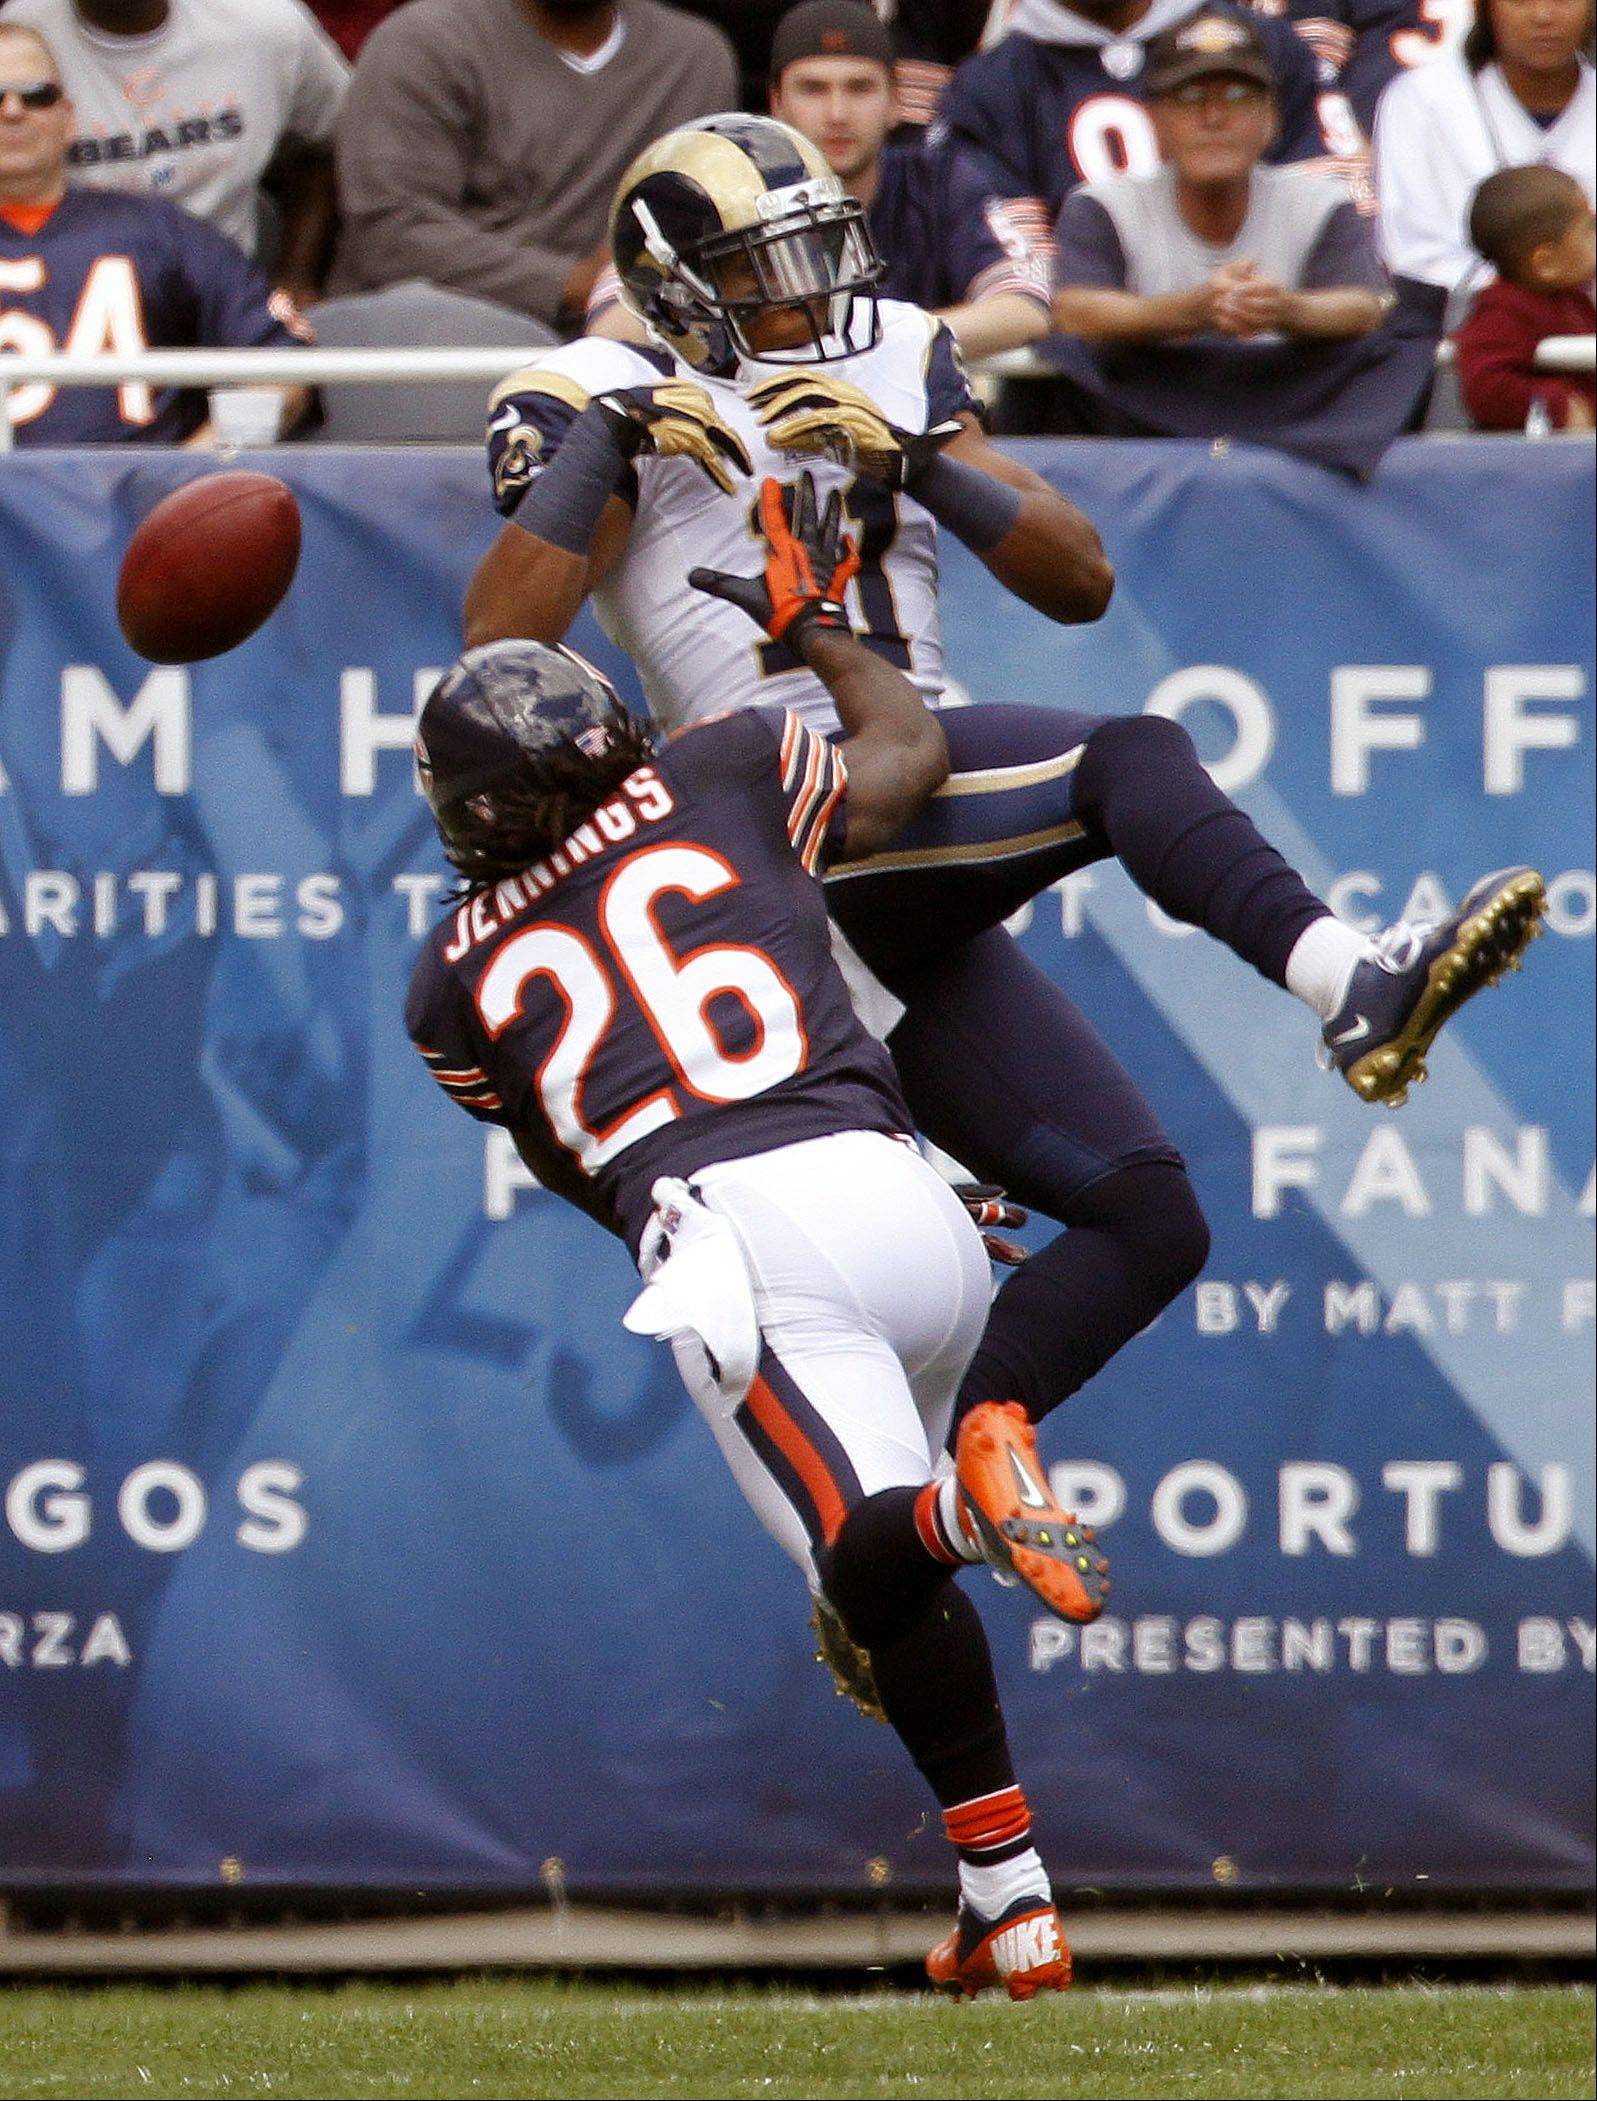 Chicago Bears cornerback Tim Jennings breaks up a possible touchdown catch by St. Louis Rams wide receiver Brandon Gibson during the Bears 23-6 win over the St. Louis Rams Sunday at Soldier Field in Chicago.